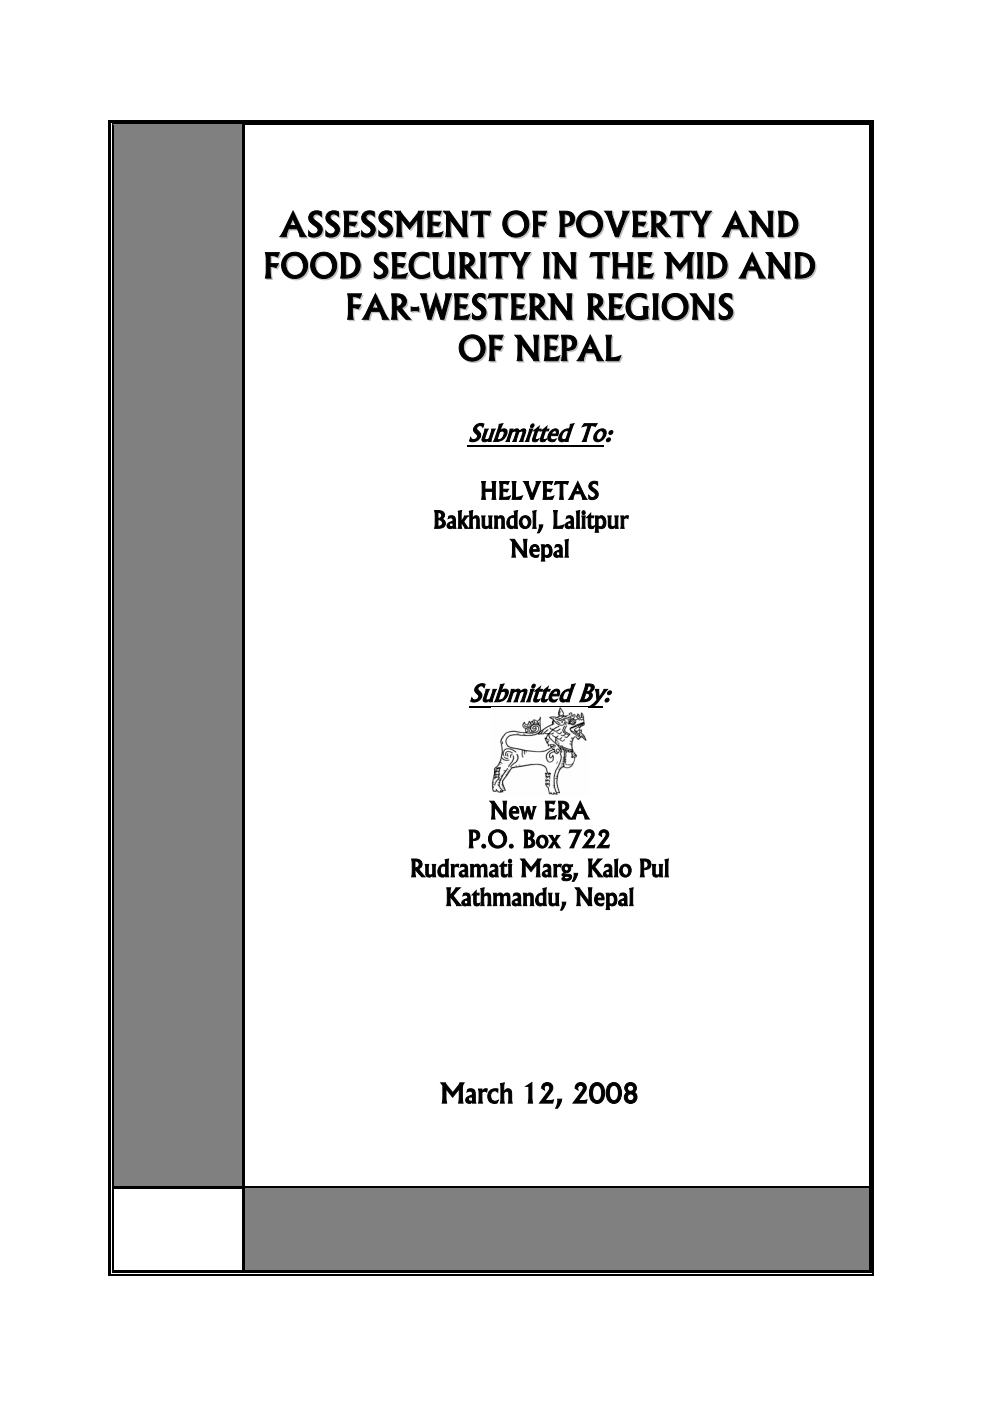 Assessment of Poverty and Food Security in the Mid and Far-Western Regions of Nepal